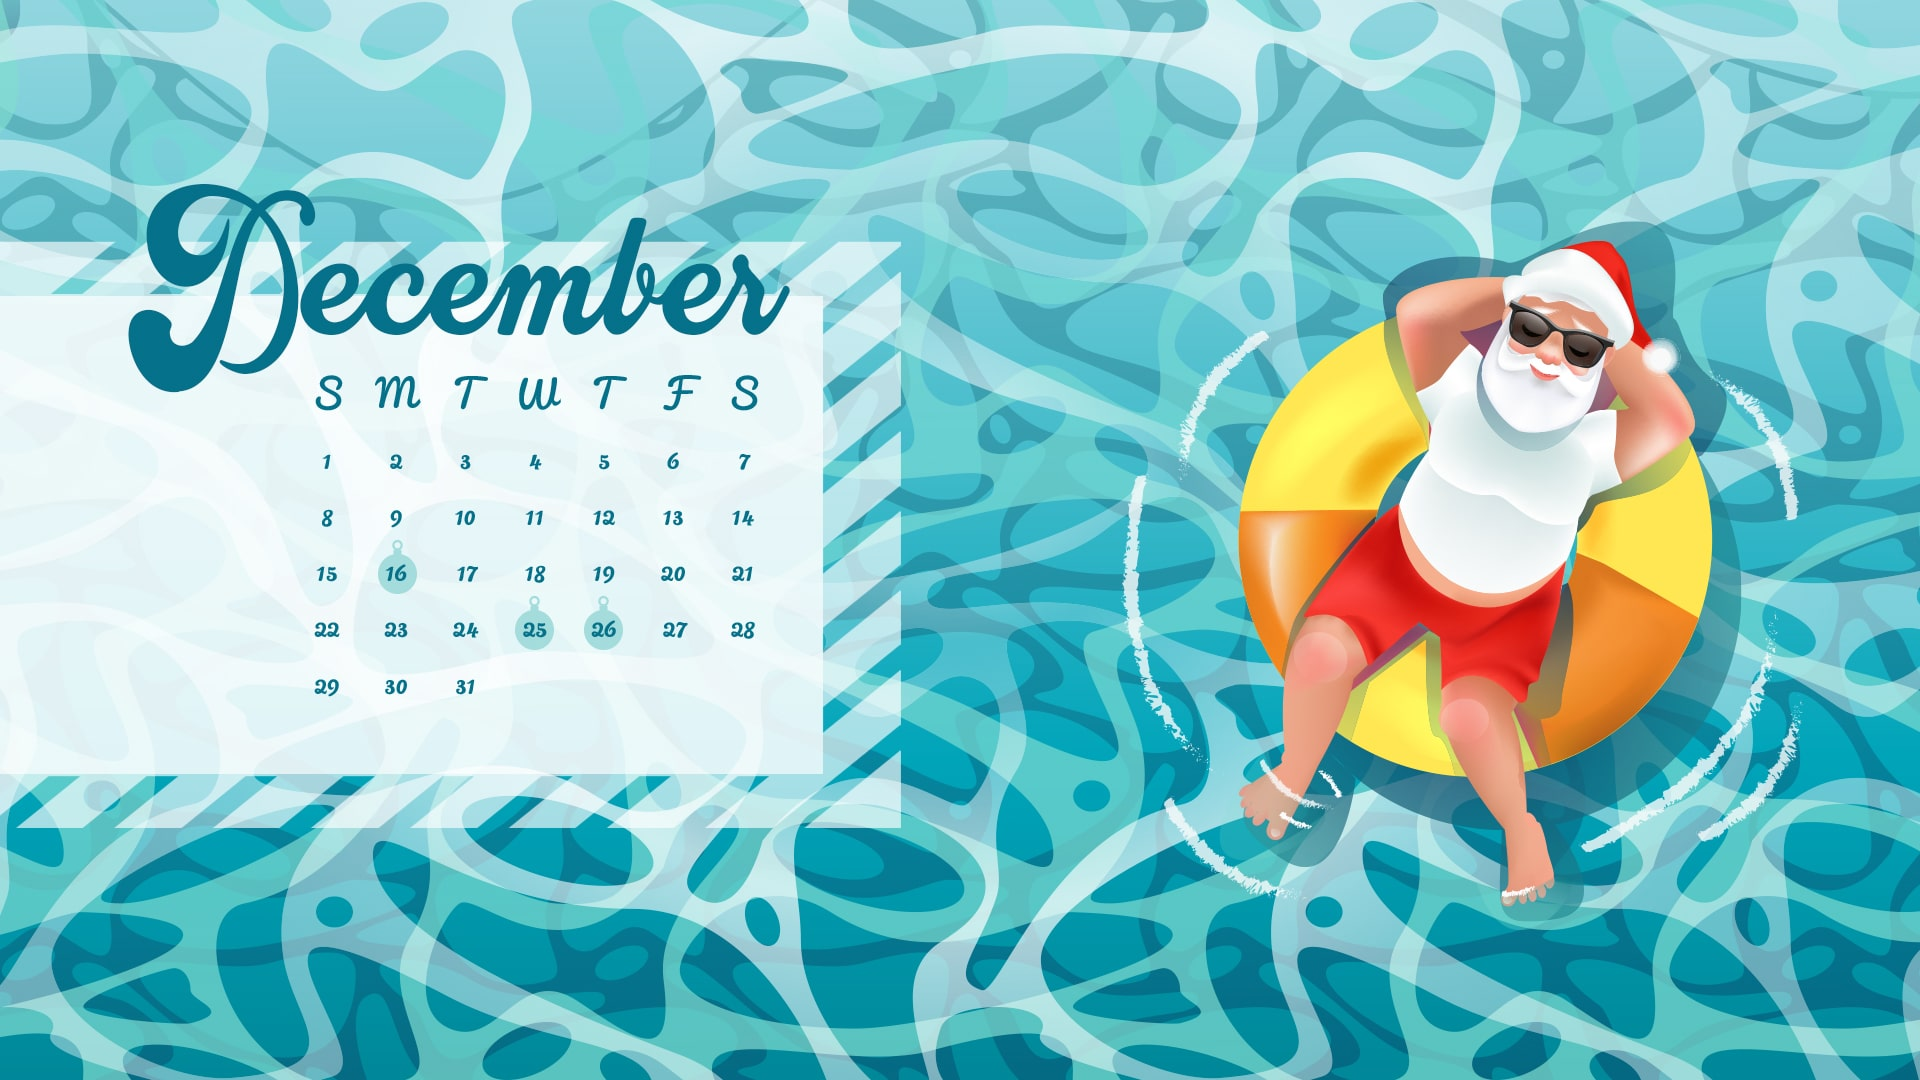 December 2019 Wallpaper For Desktop